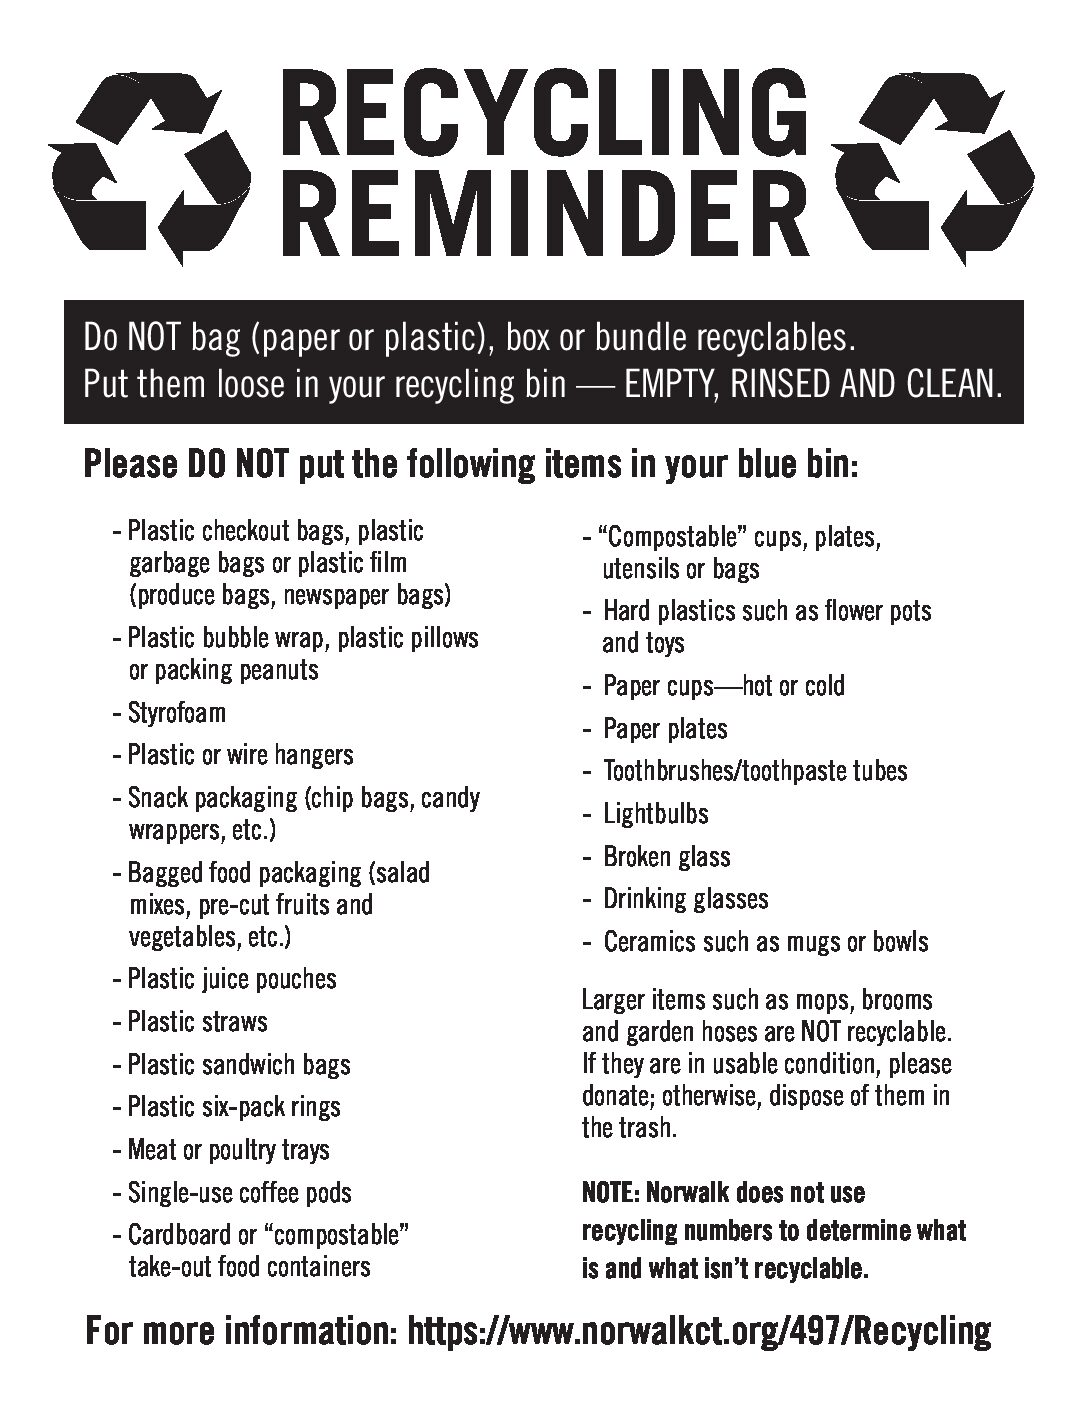 Recycling Reminders from Norwalk